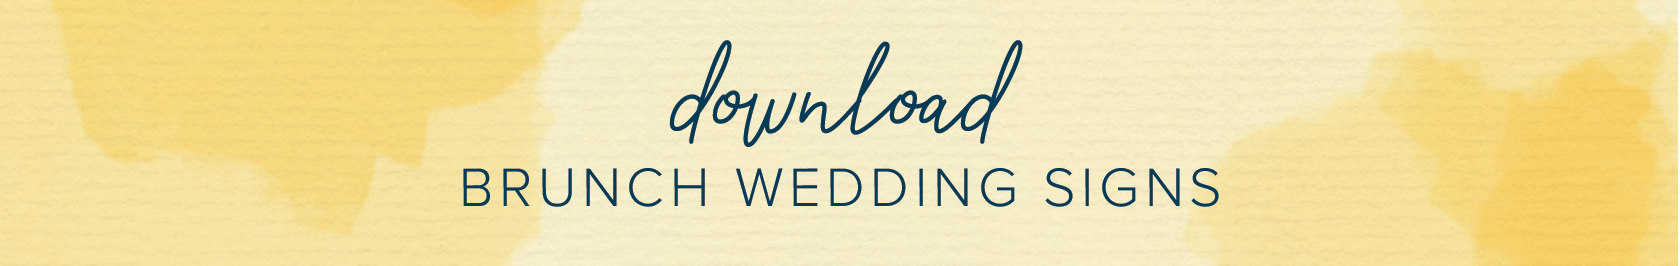 download brunch wedding signs